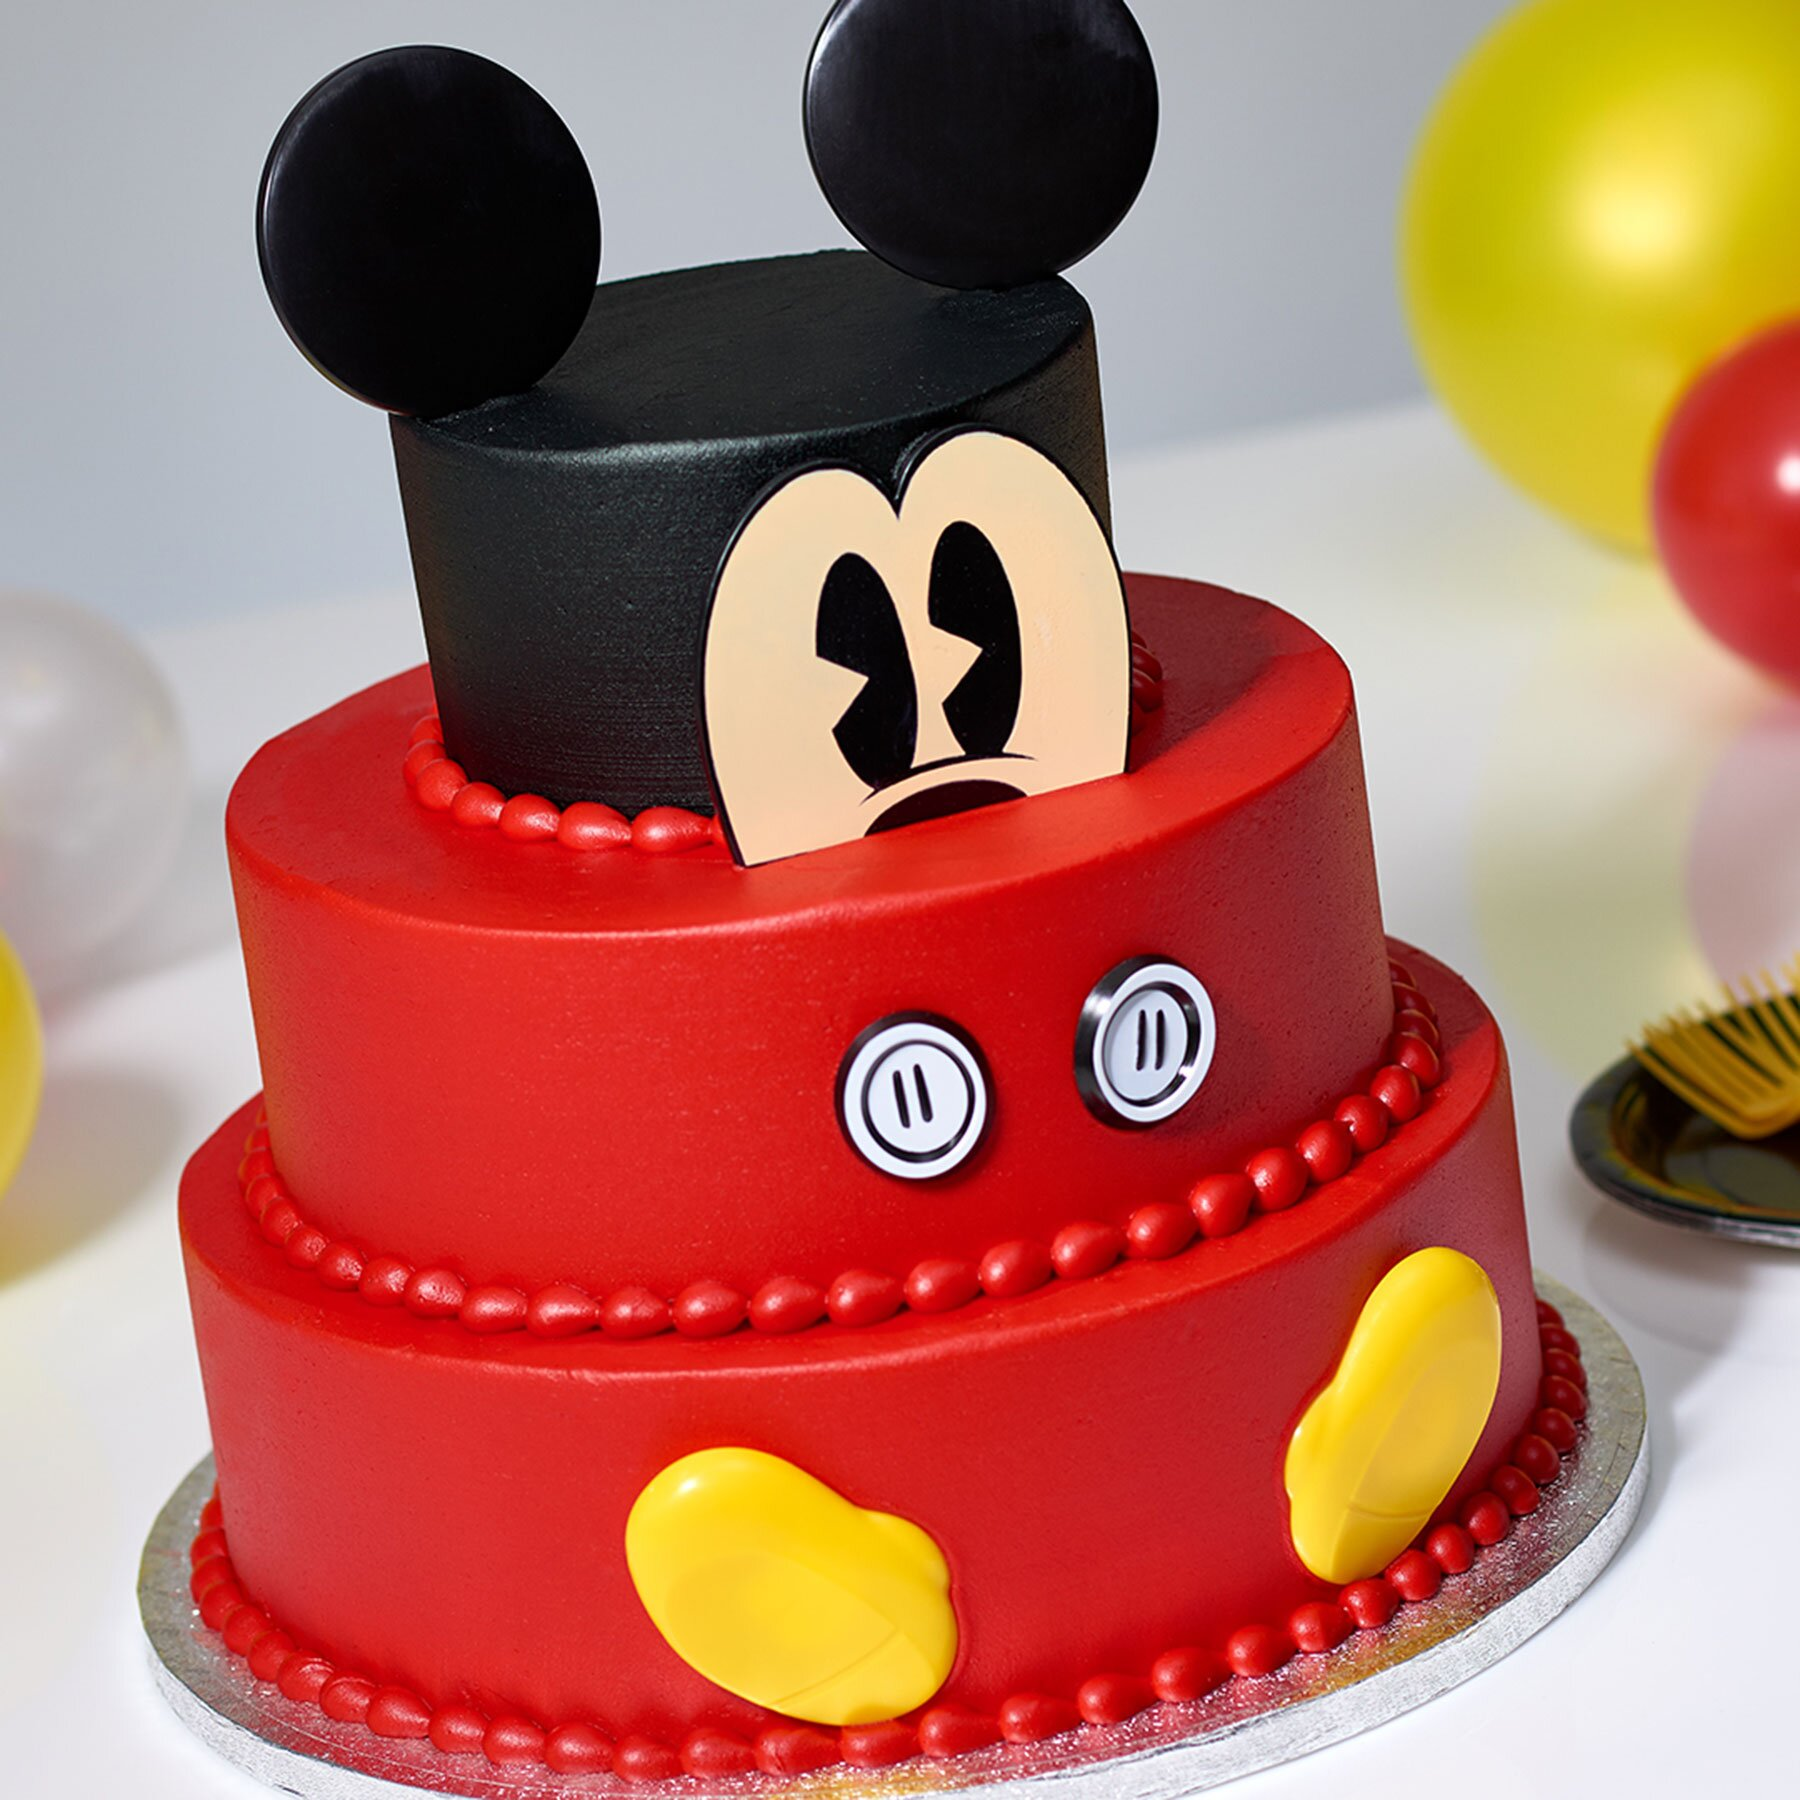 Peachy Sams Club Debuts Mickey Mouse Cakes For His 90Th Birthday Funny Birthday Cards Online Alyptdamsfinfo